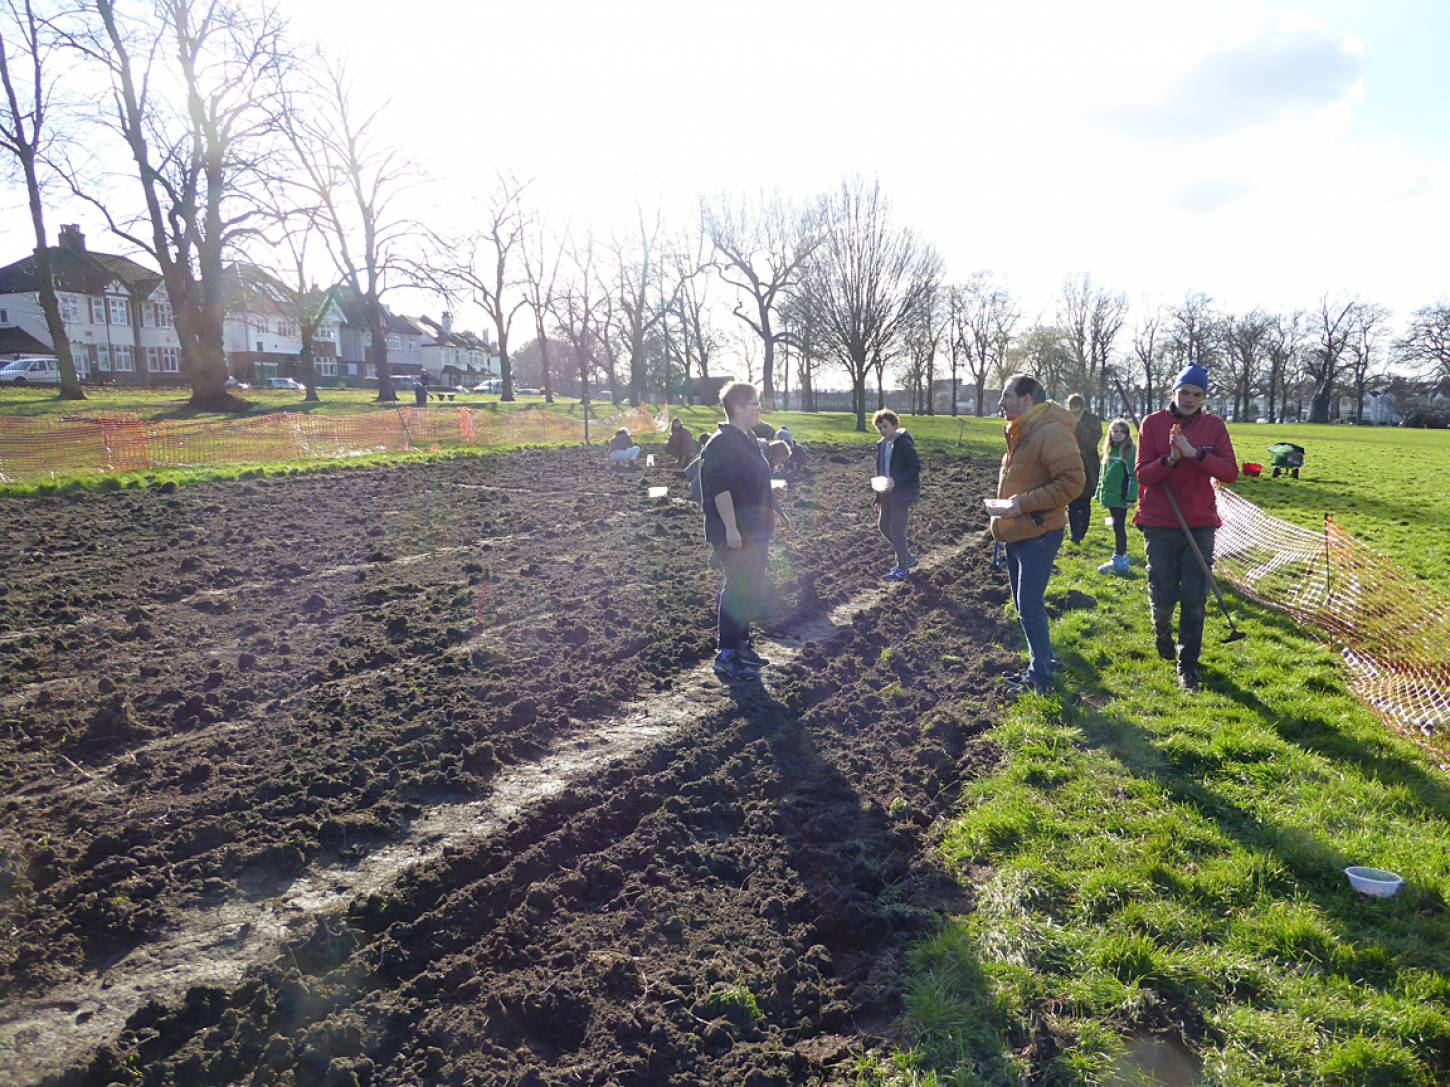 wheat goes in after harrowing on <a href='https://www.friendsofruskinpark.org.uk/' target='_blank'>Ruskin Park</a> - 3:27pm&nbsp;17<sup>th</sup>&nbsp;Feb.&nbsp;'18